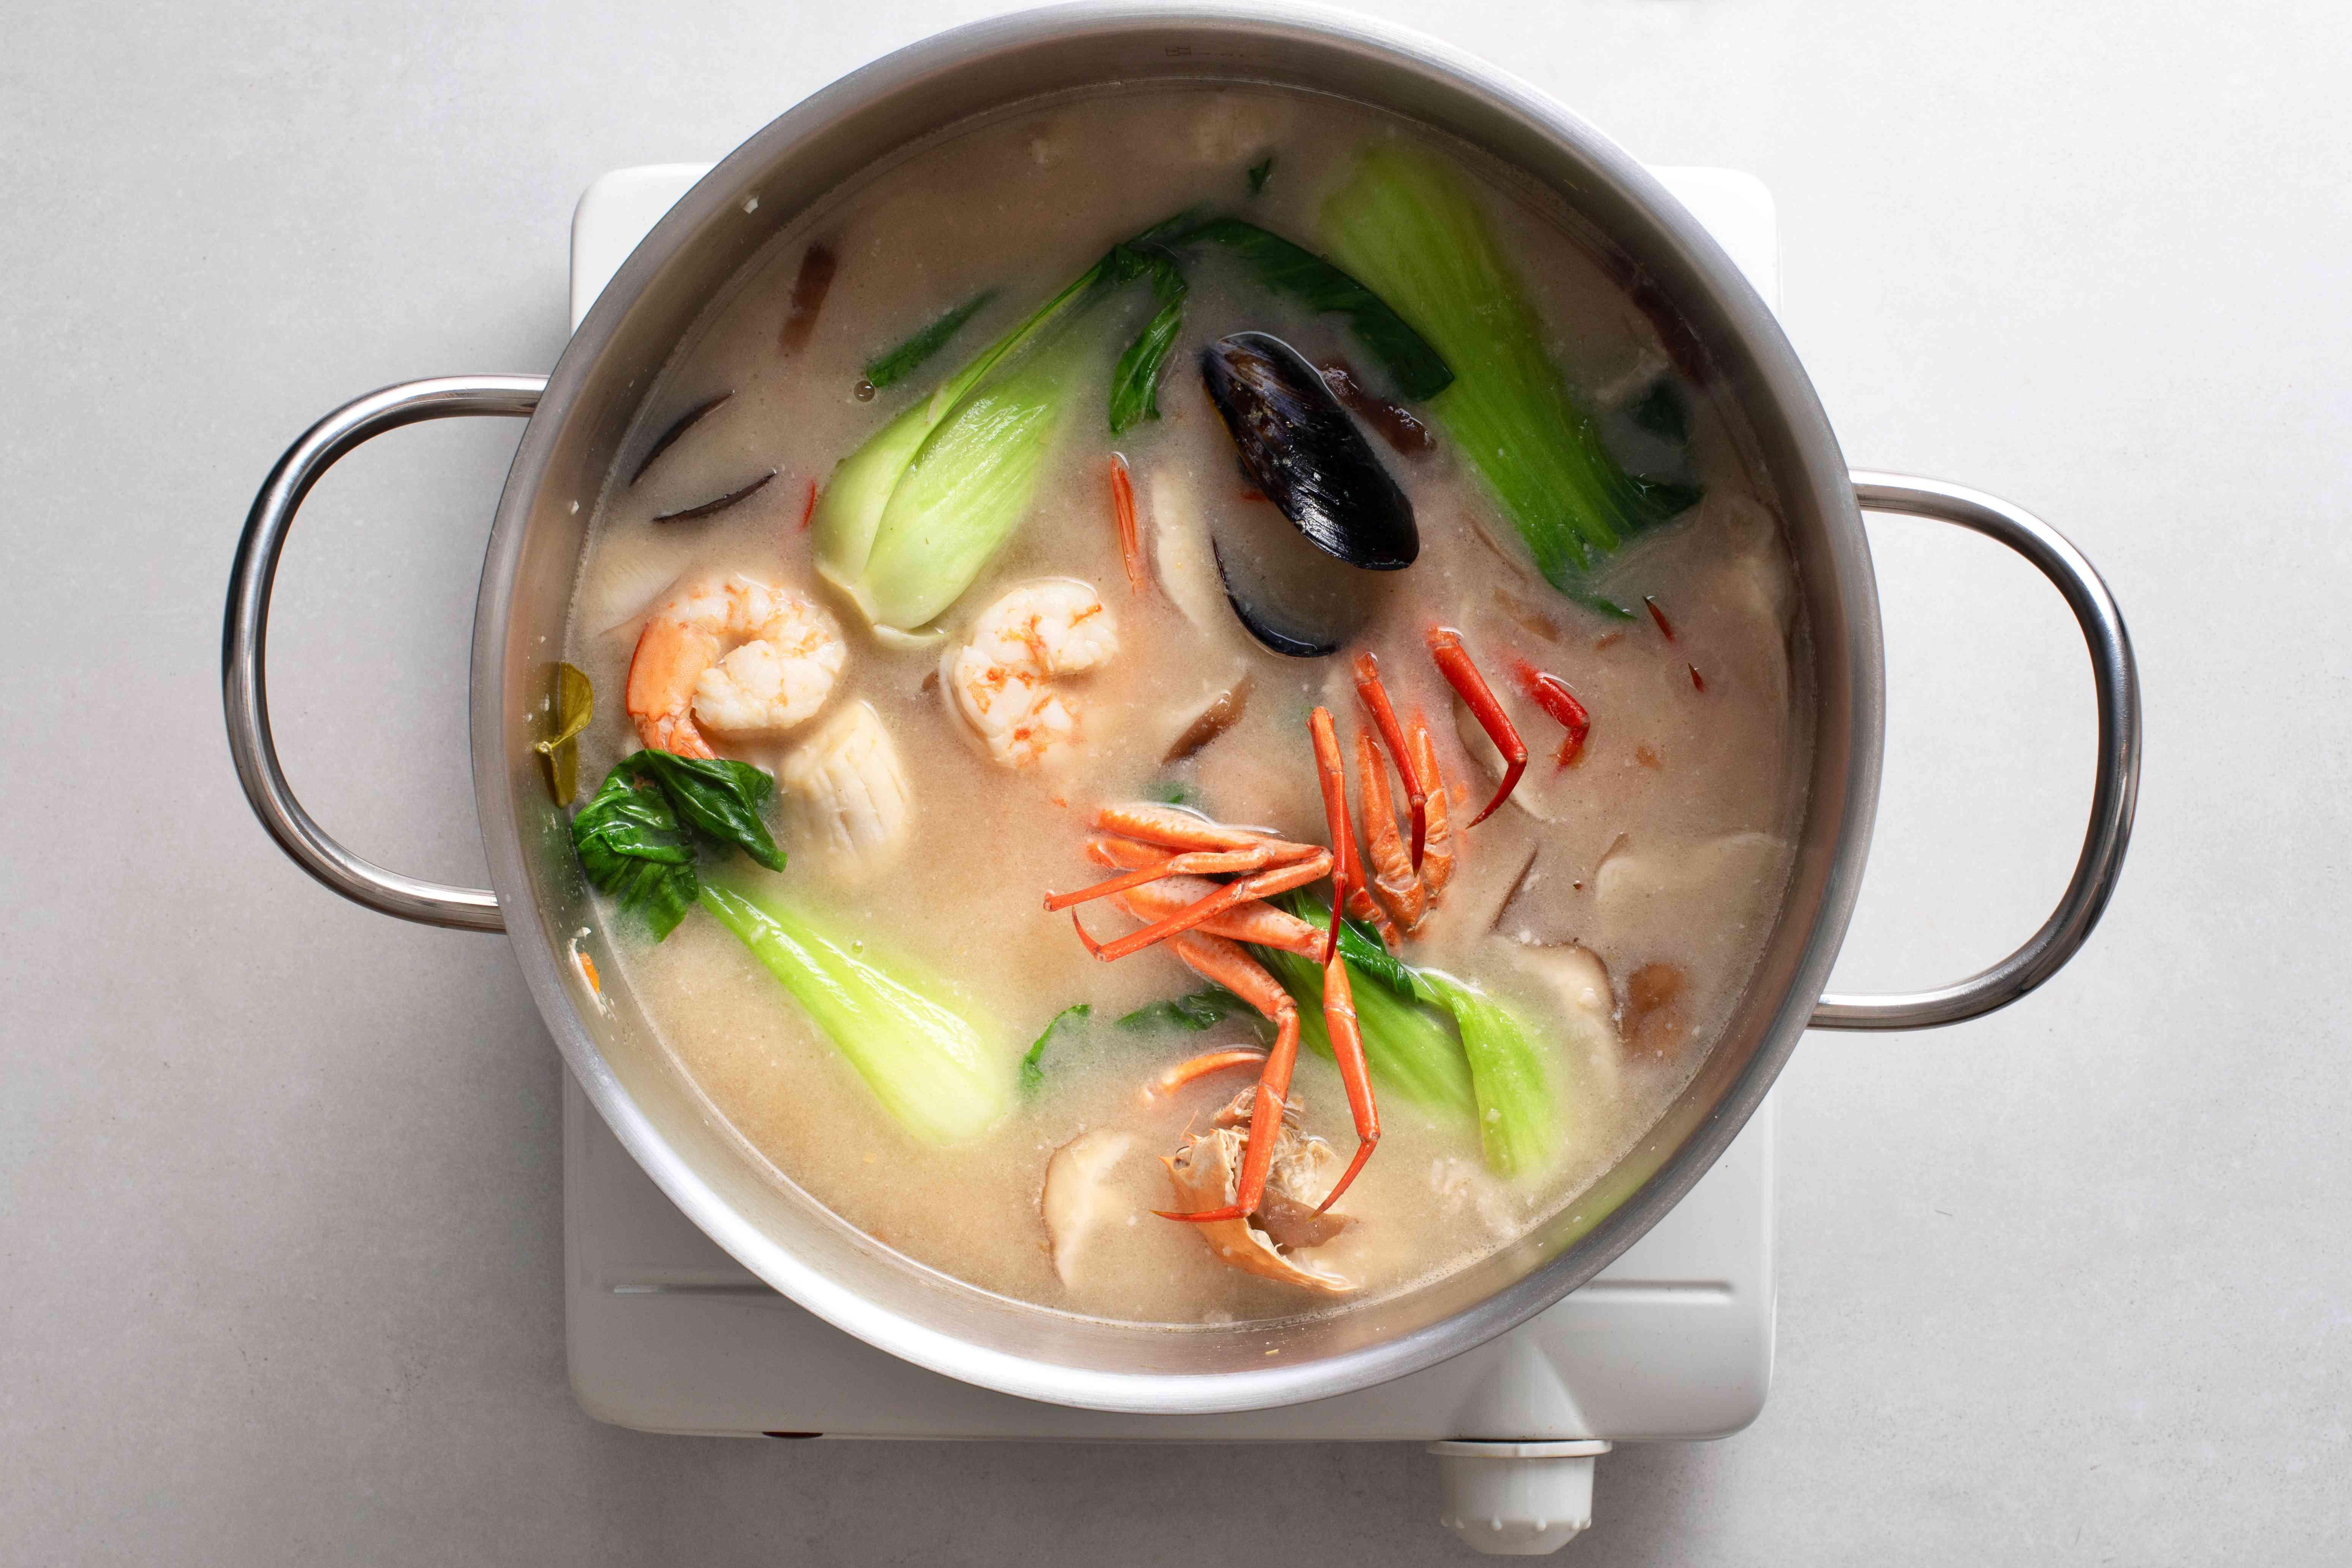 A pot of coconut milk broth with vegetables and cooked seafood simmering